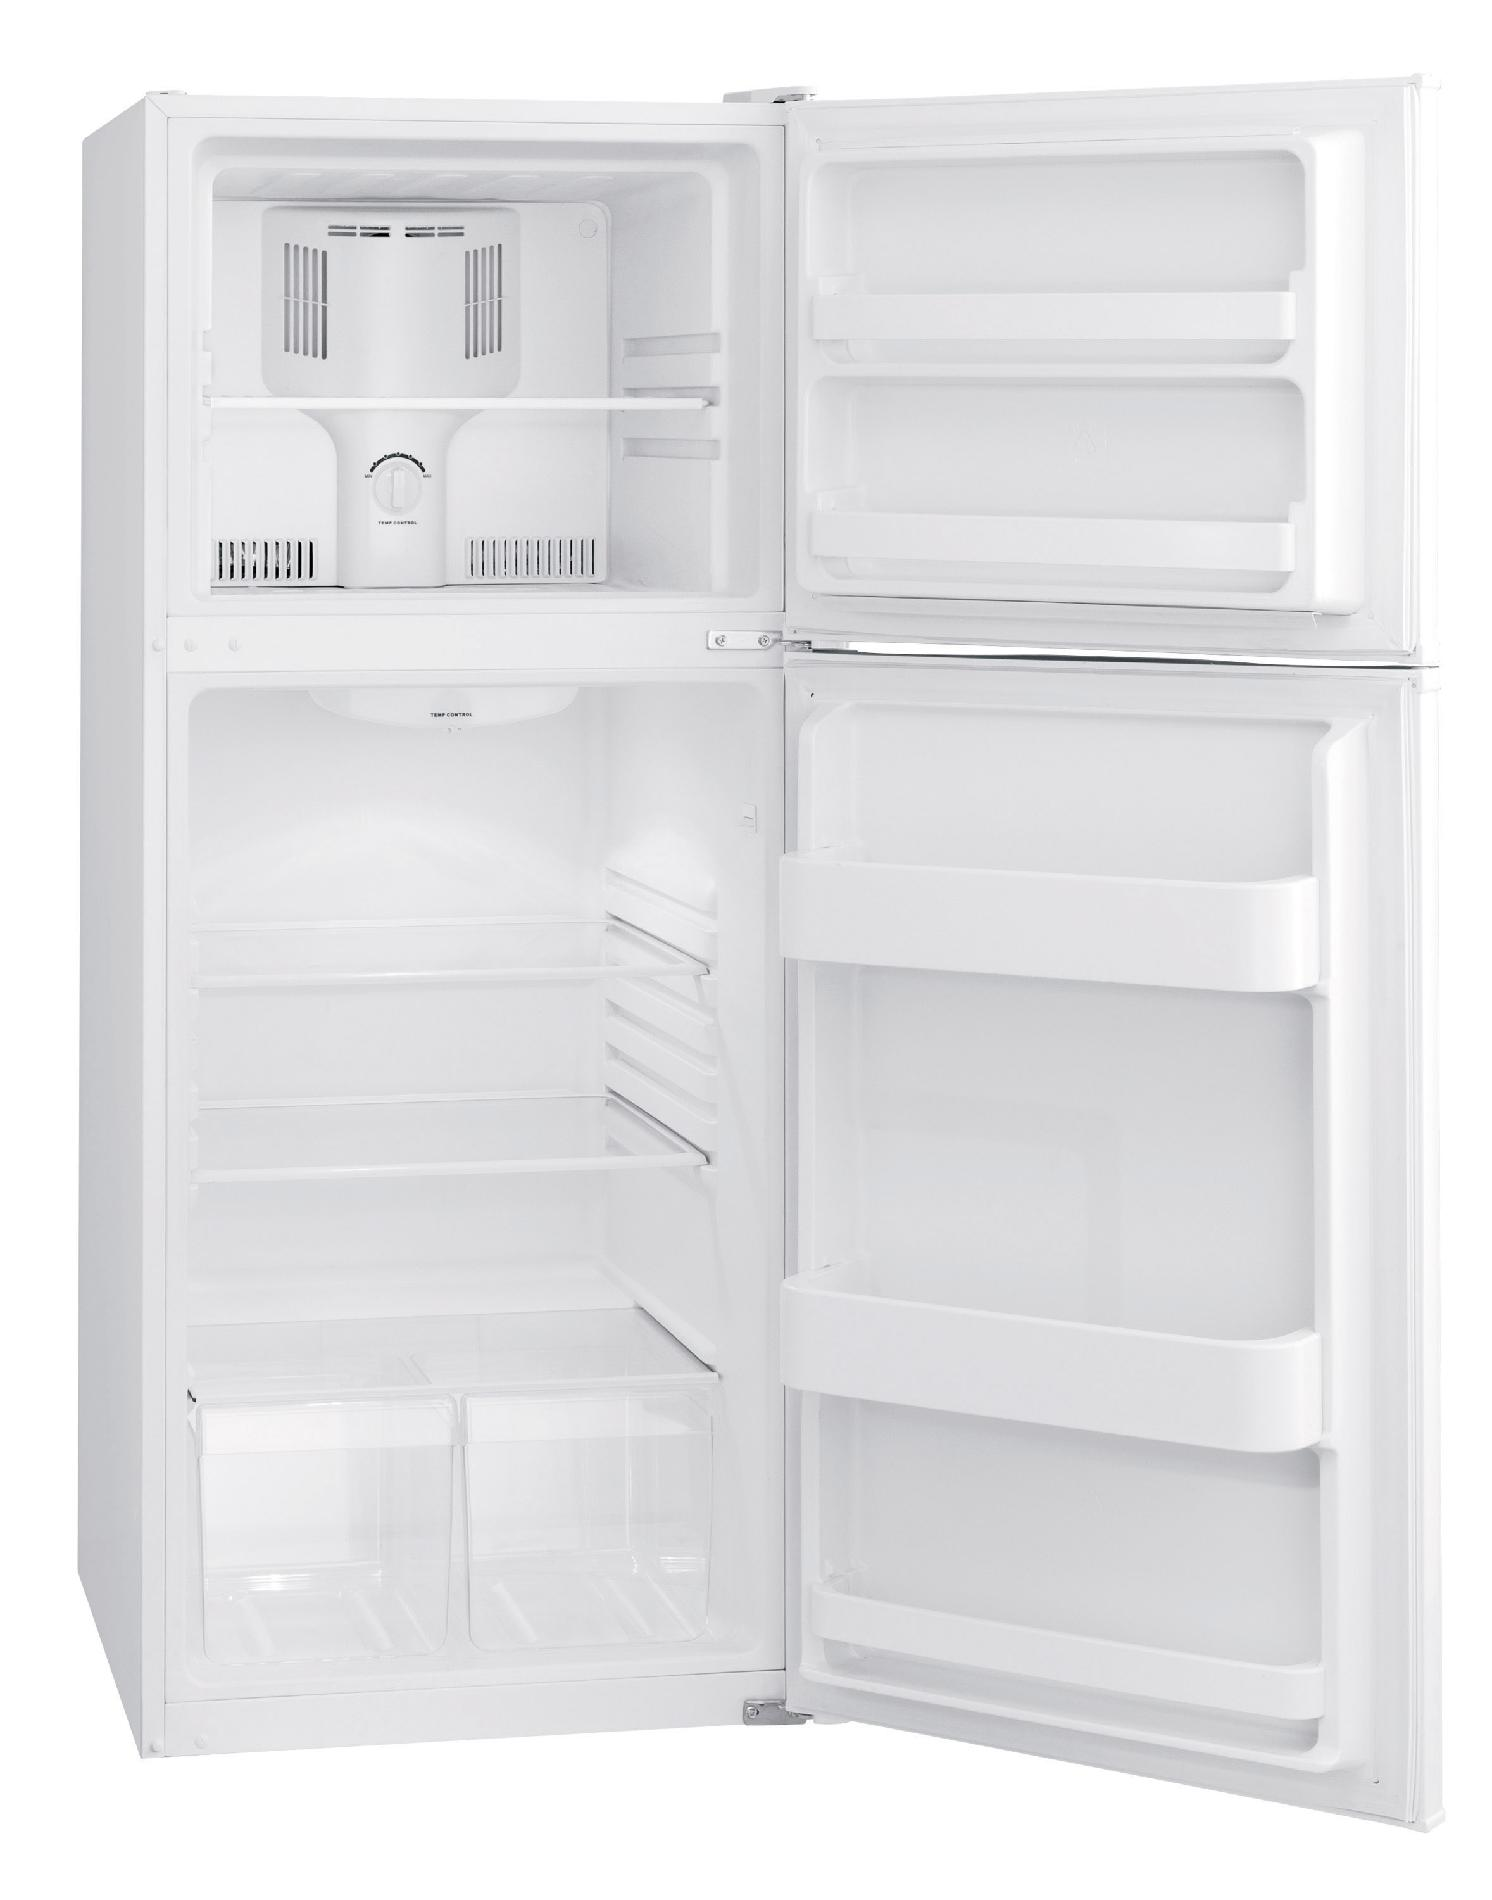 Frigidaire 11.5 cu. ft. Top-Freezer Refrigerator - White